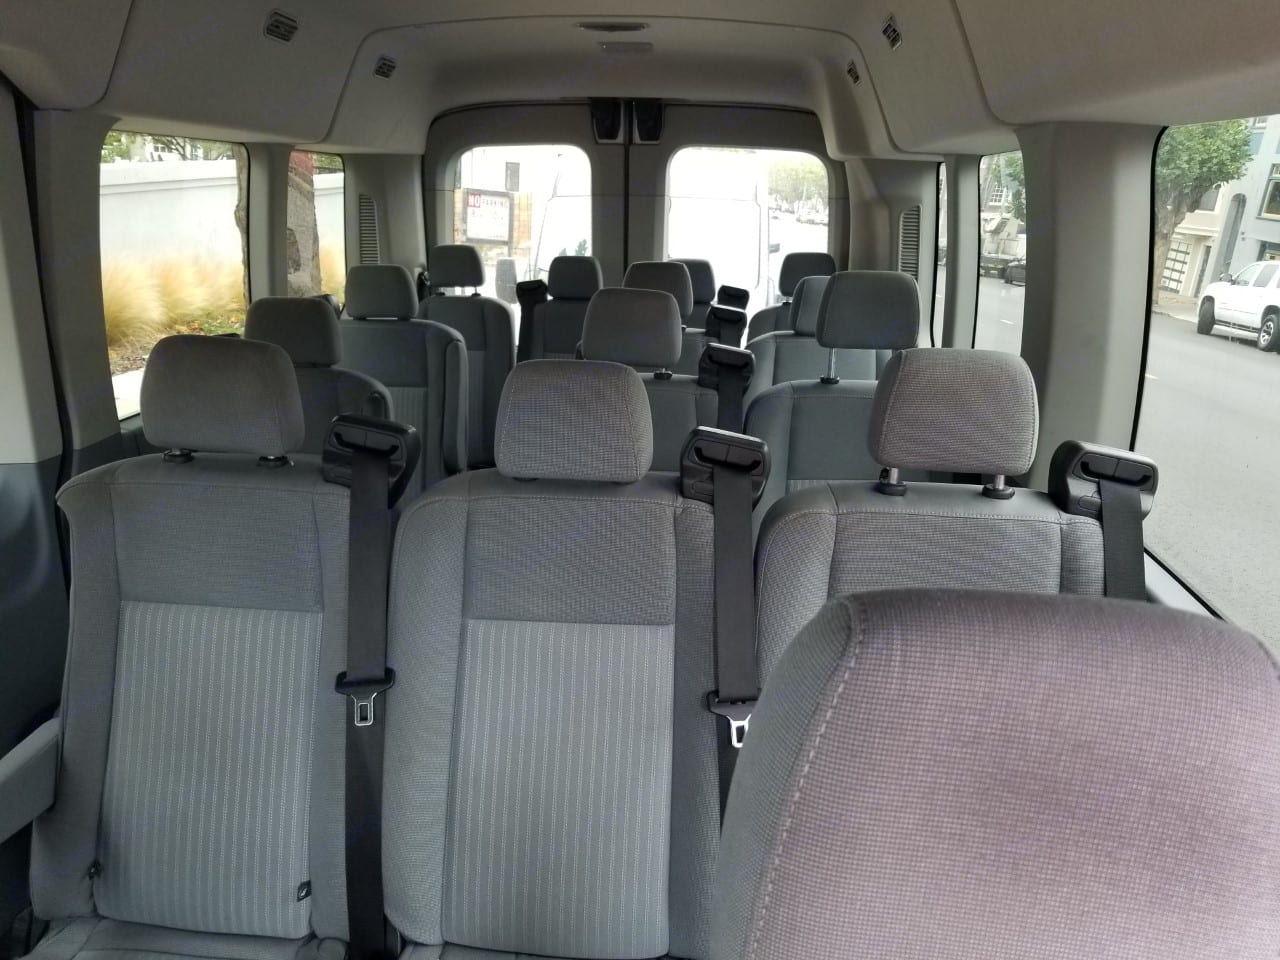 View inside from the front. Ford Transit 2017